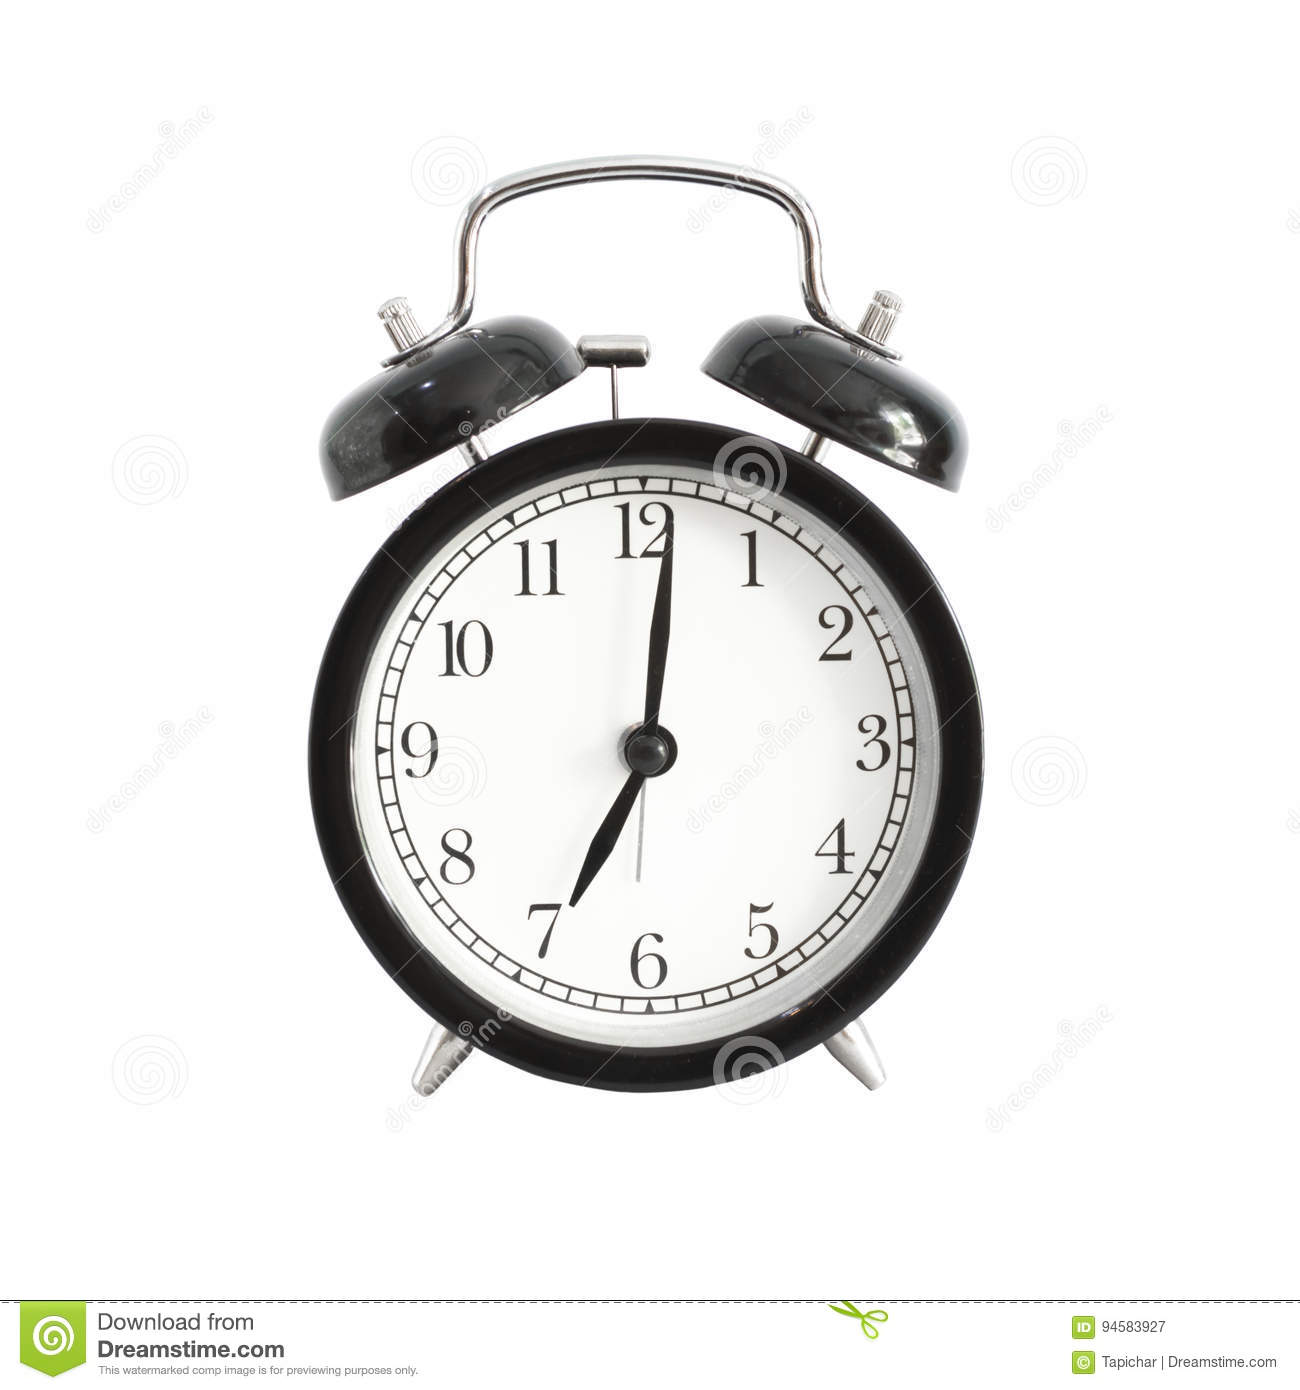 alarm clock isolated alarm clock setting at 7 am or pm stock image image of clock minute. Black Bedroom Furniture Sets. Home Design Ideas